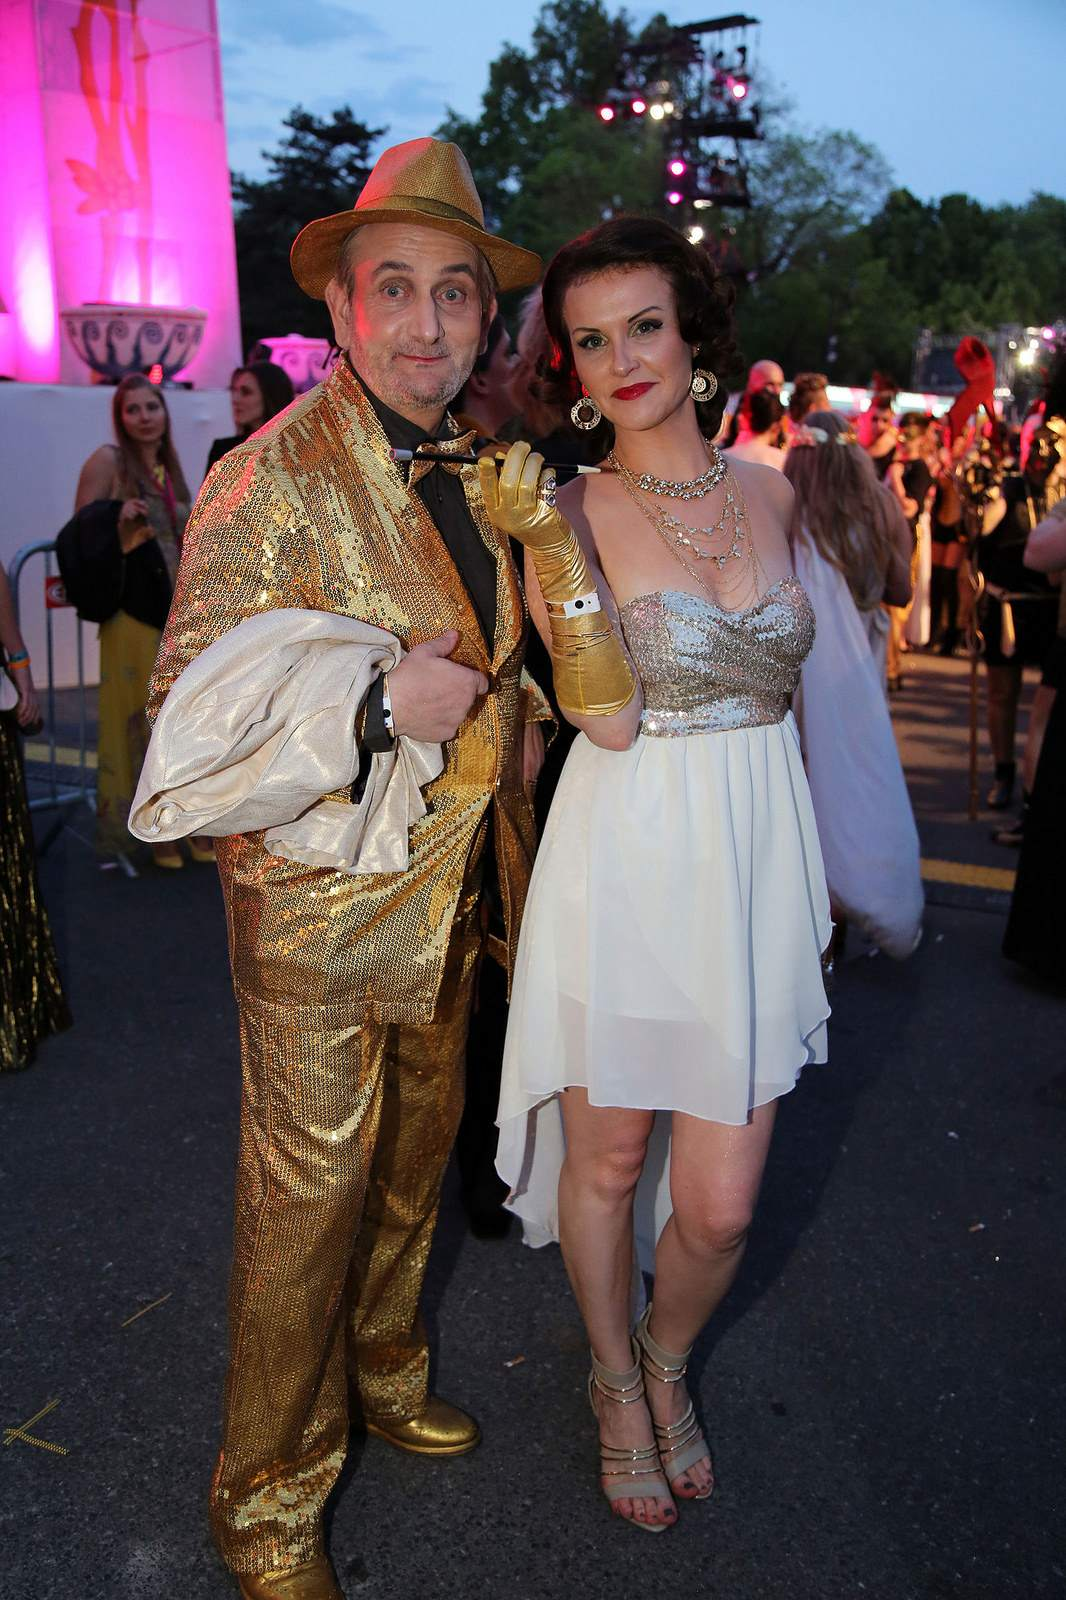 life ball8 Life Ball 2015 in Wien